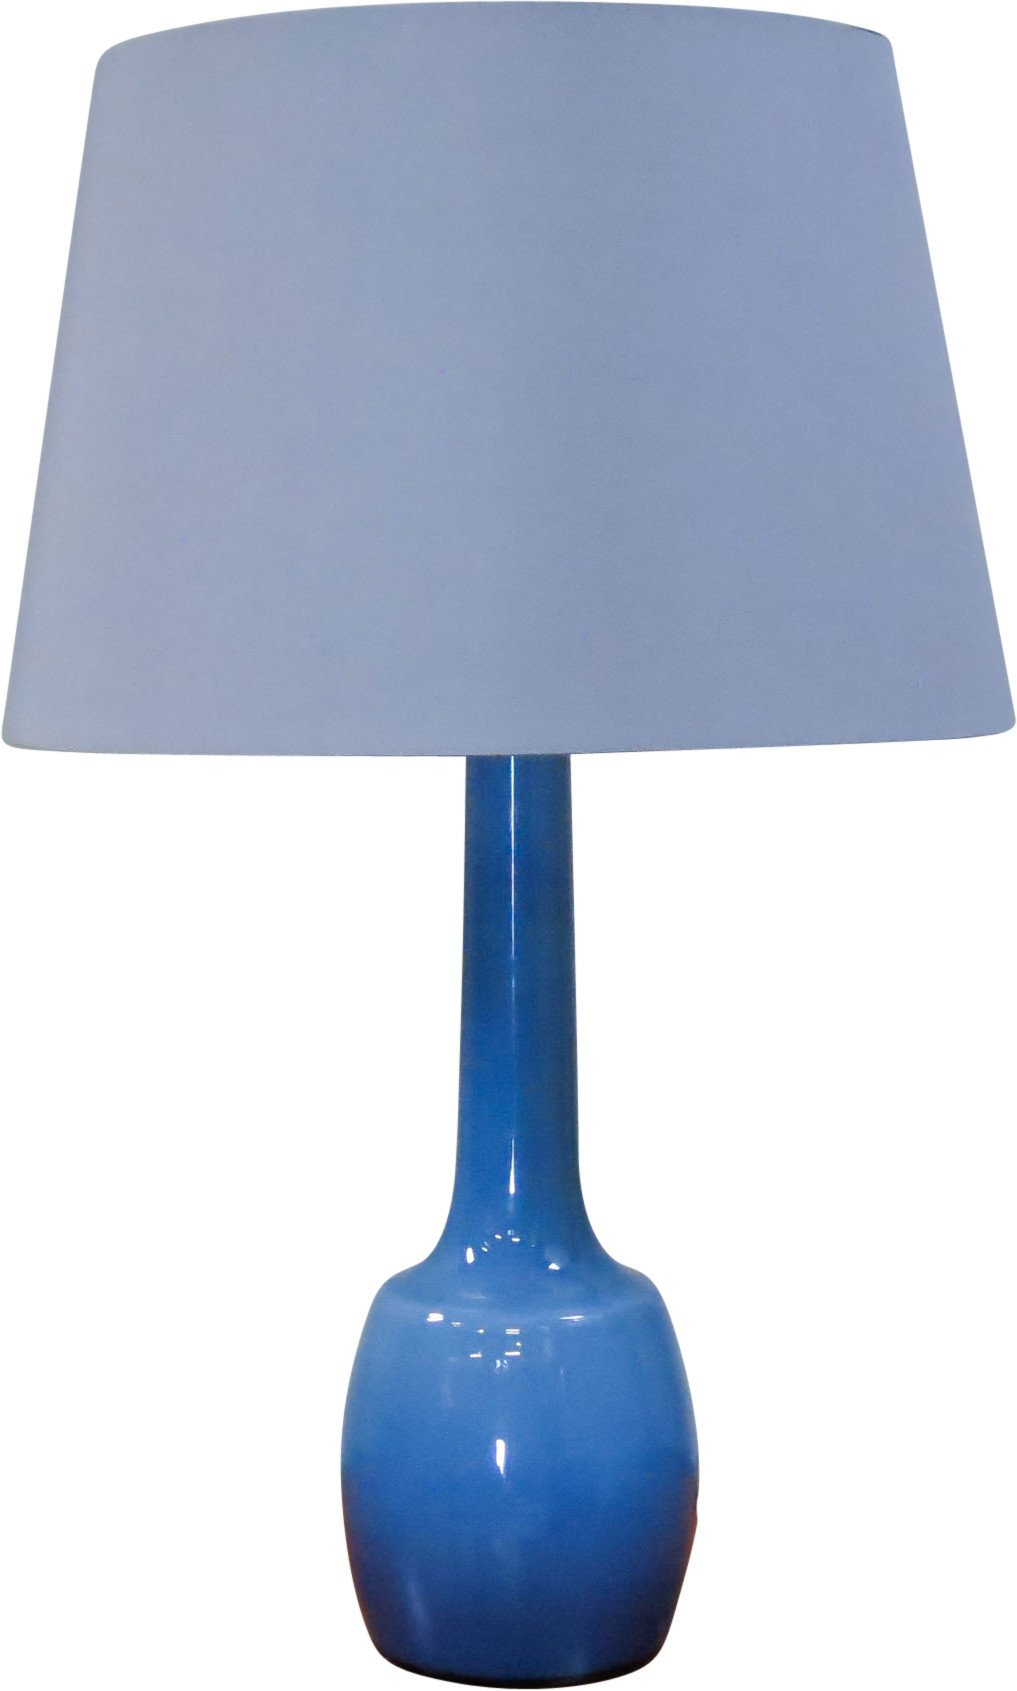 Table Lamp, Holmegaard, Denmark, 1960s